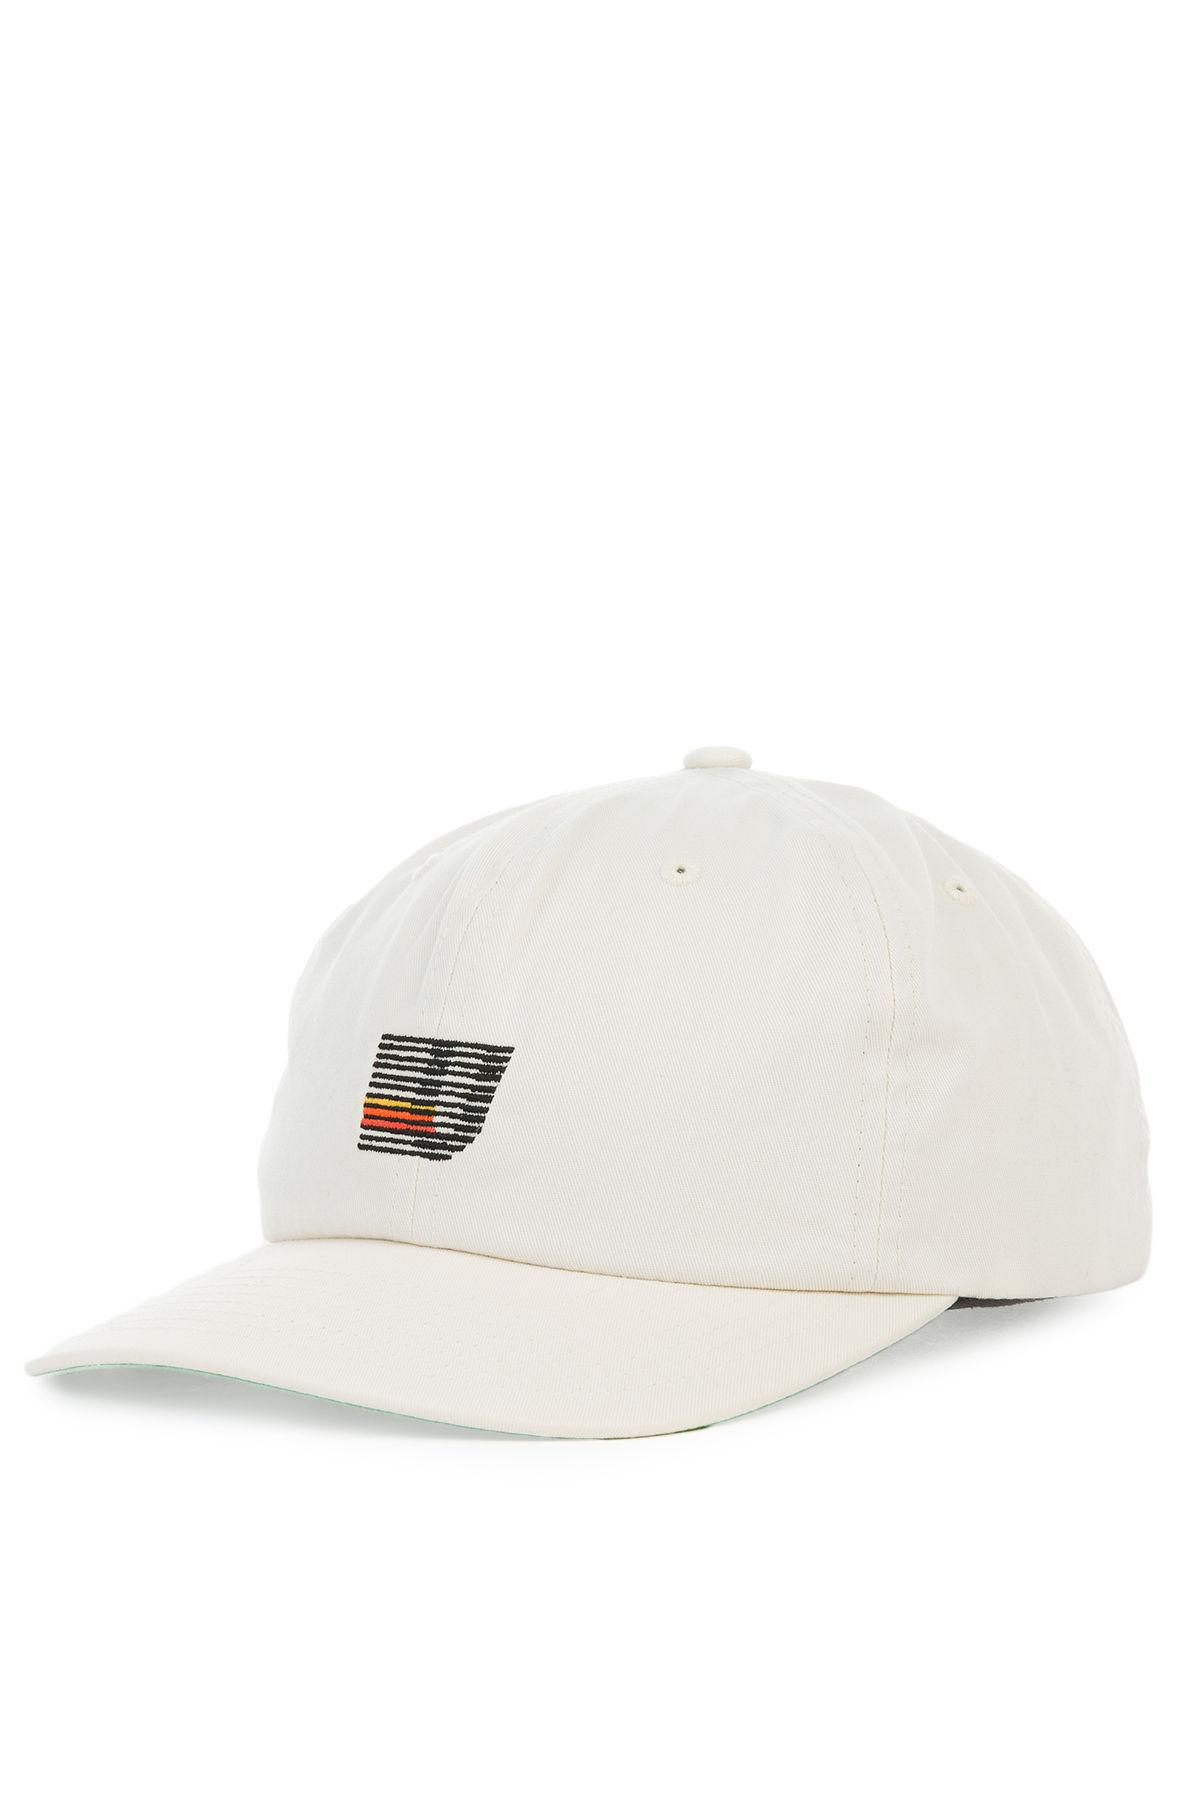 80614cdfef8 Lyst - Undefeated The Speed Stripe Strapback Hat in Natural for Men